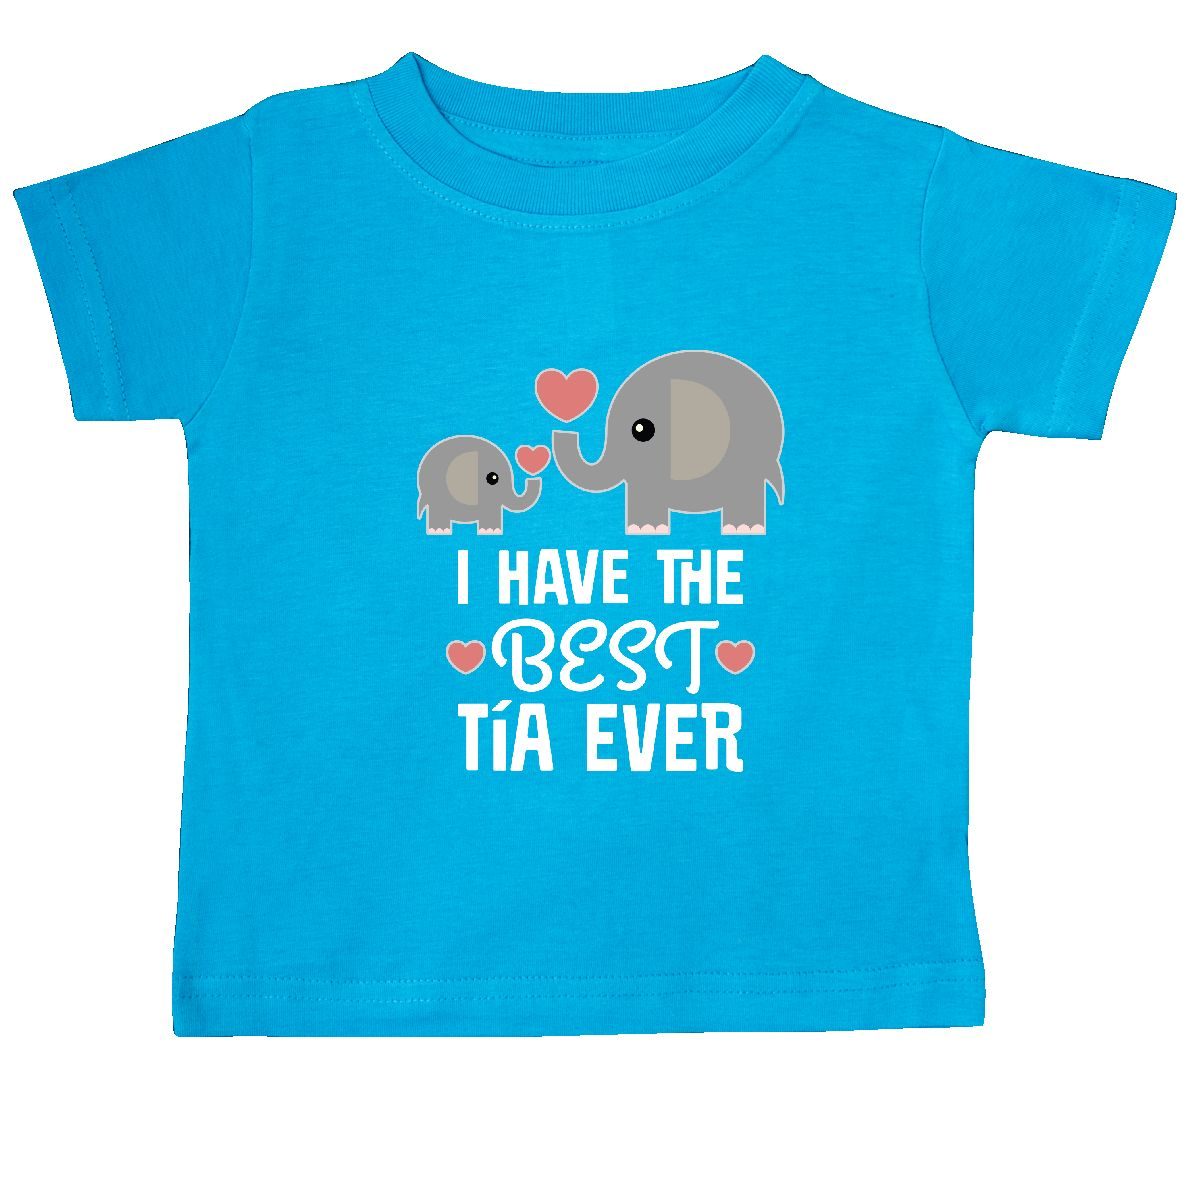 Inktastic Best Tia Ever Niece Nephew Gift Baby T-Shirt Aunt From ...